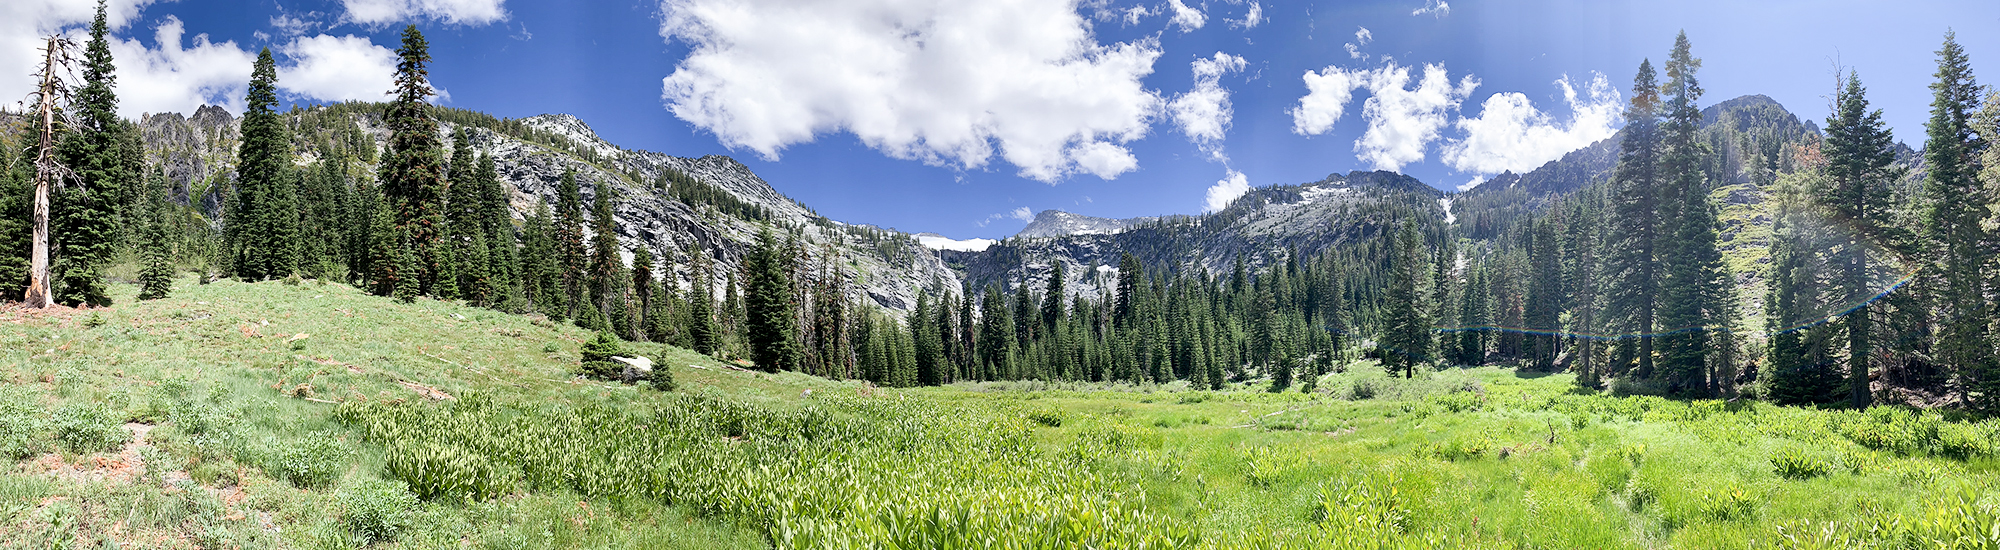 Grizzly Meadows in Trinity Alps Wilderness